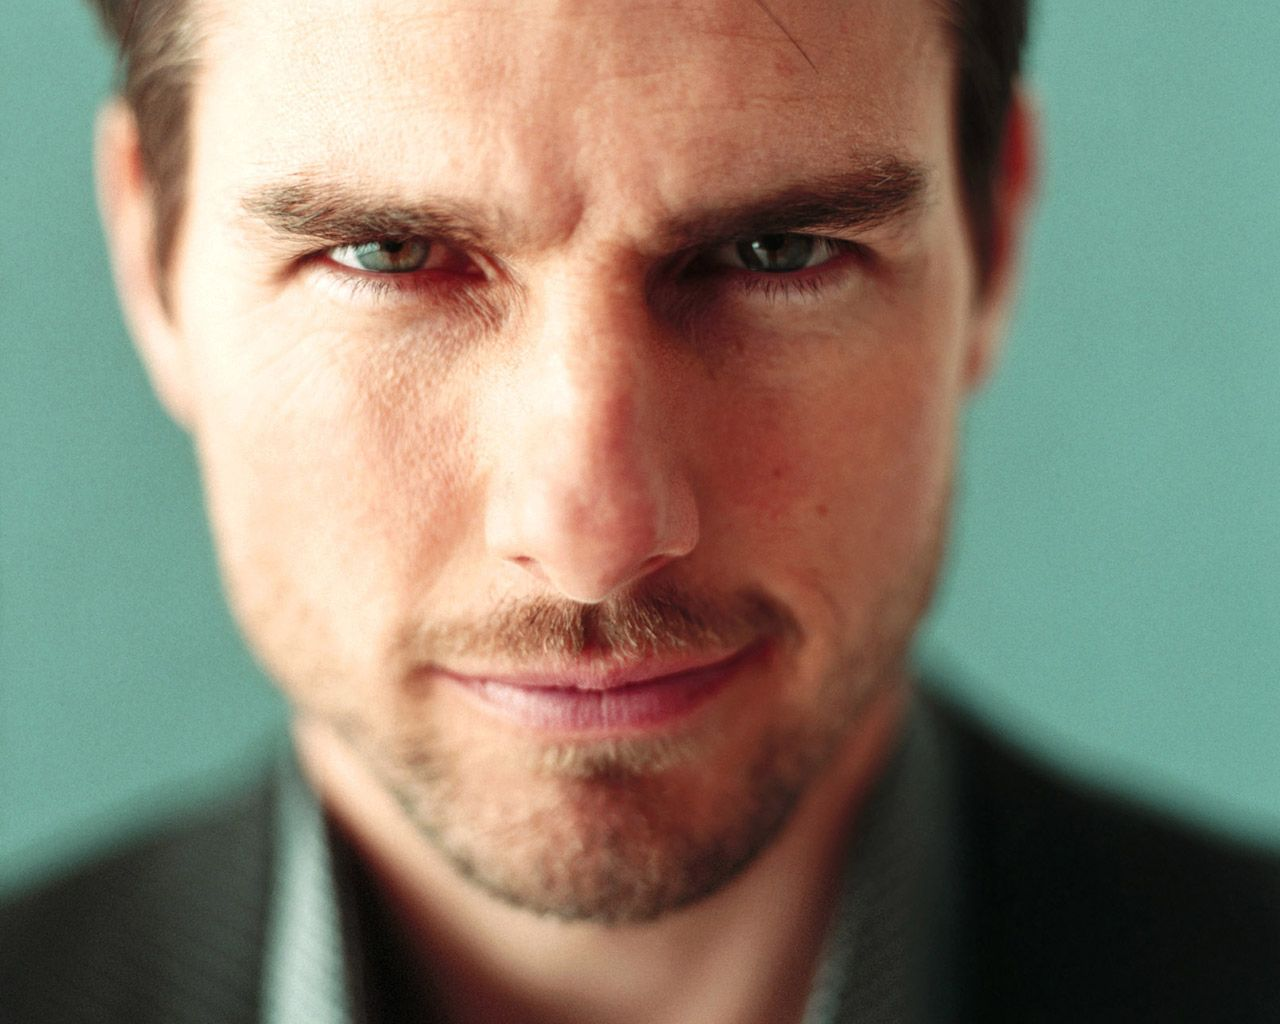 Tom Cruise Face Close Up Front Wallpaper 1280x1024